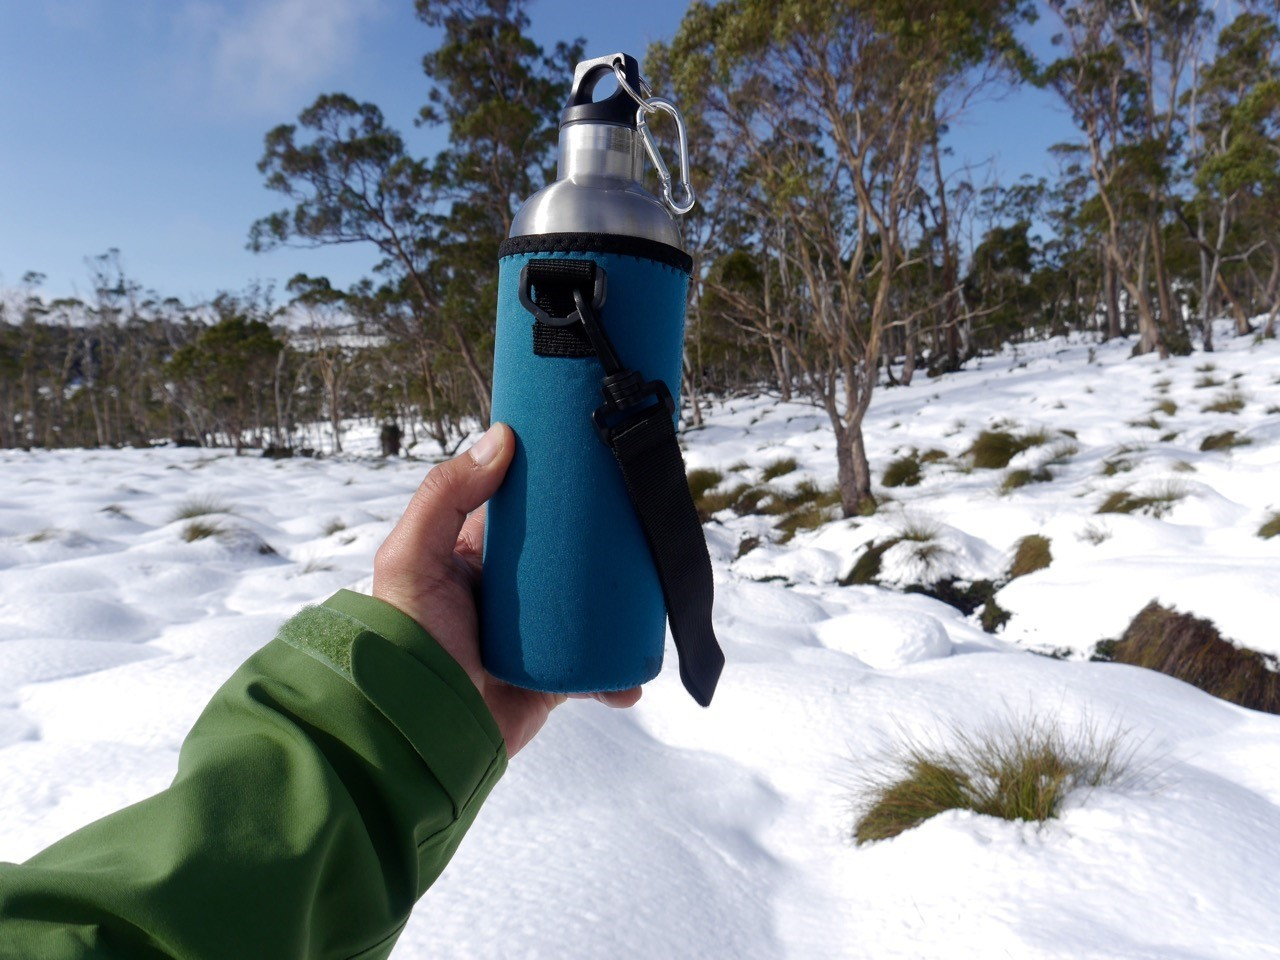 Ecococoon Insulated Water Bottle (with cuddler) Review